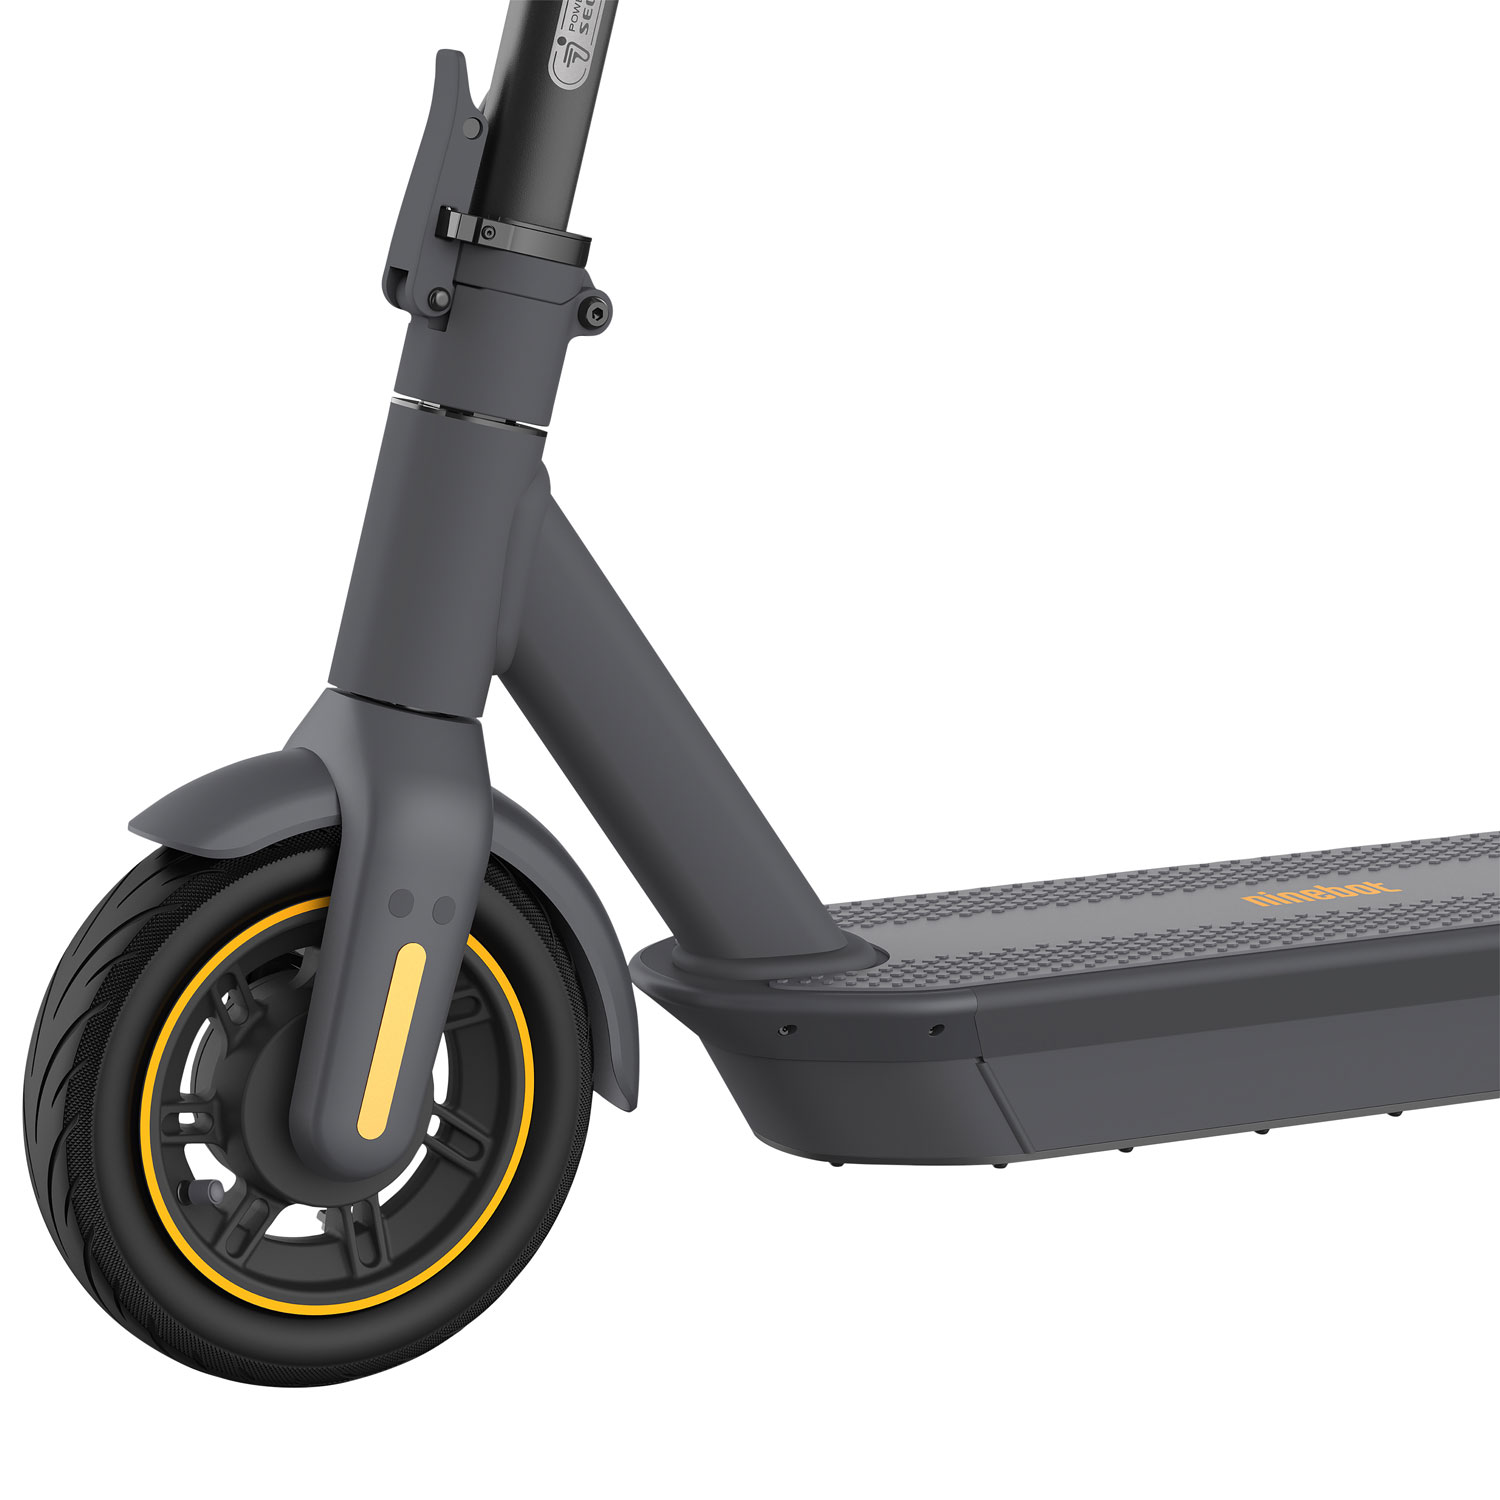 Ninebot By Segway Kickscooter Max Electric Scooter 65km Range 30km H Top Speed Dark Grey Best Buy Canada